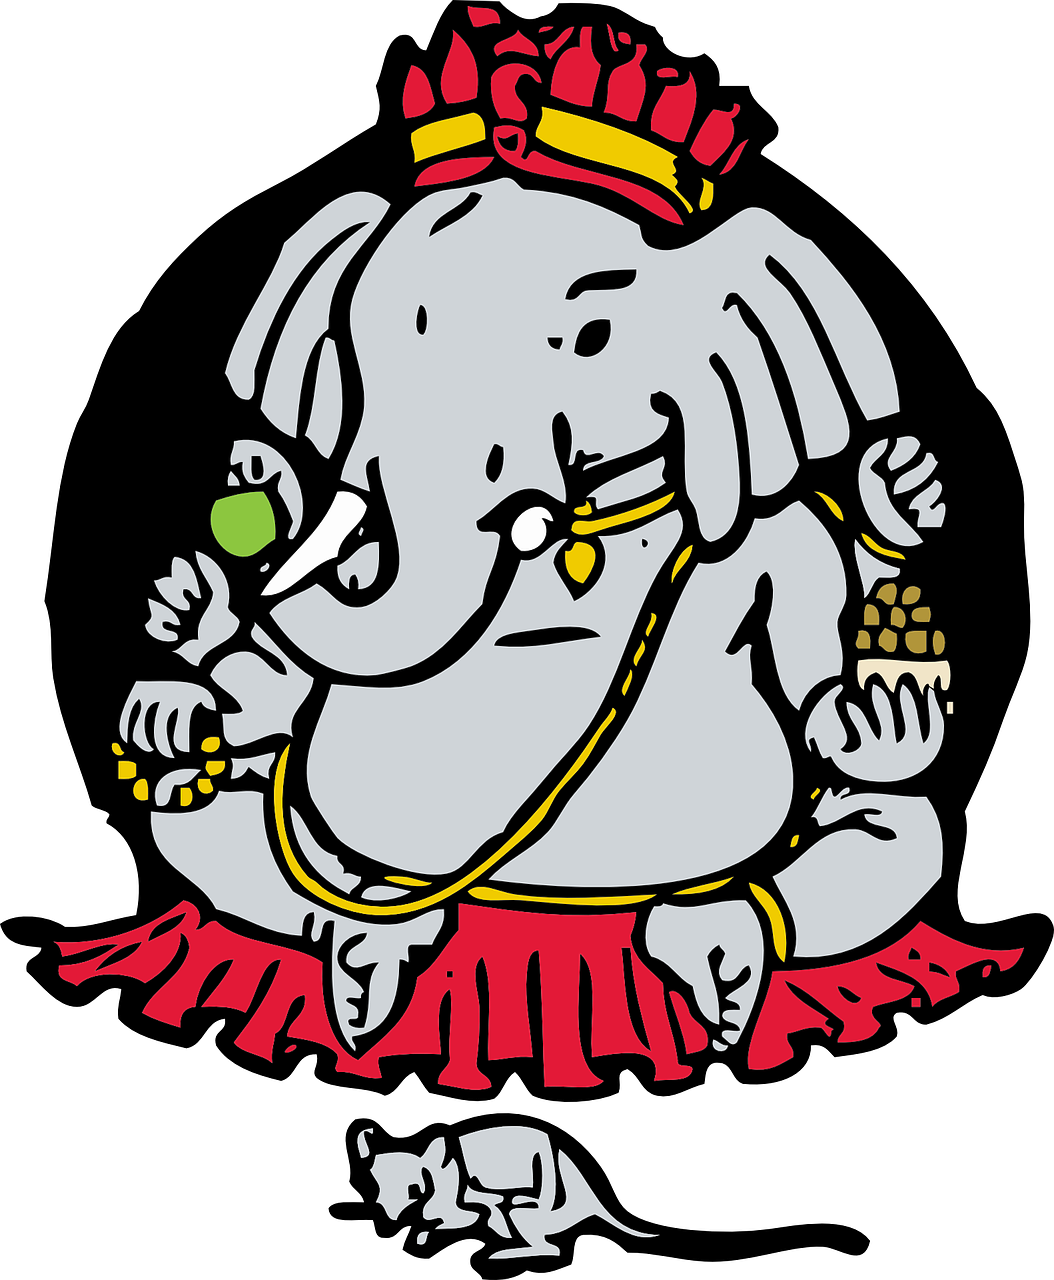 ganesha elephant god mouse free photo